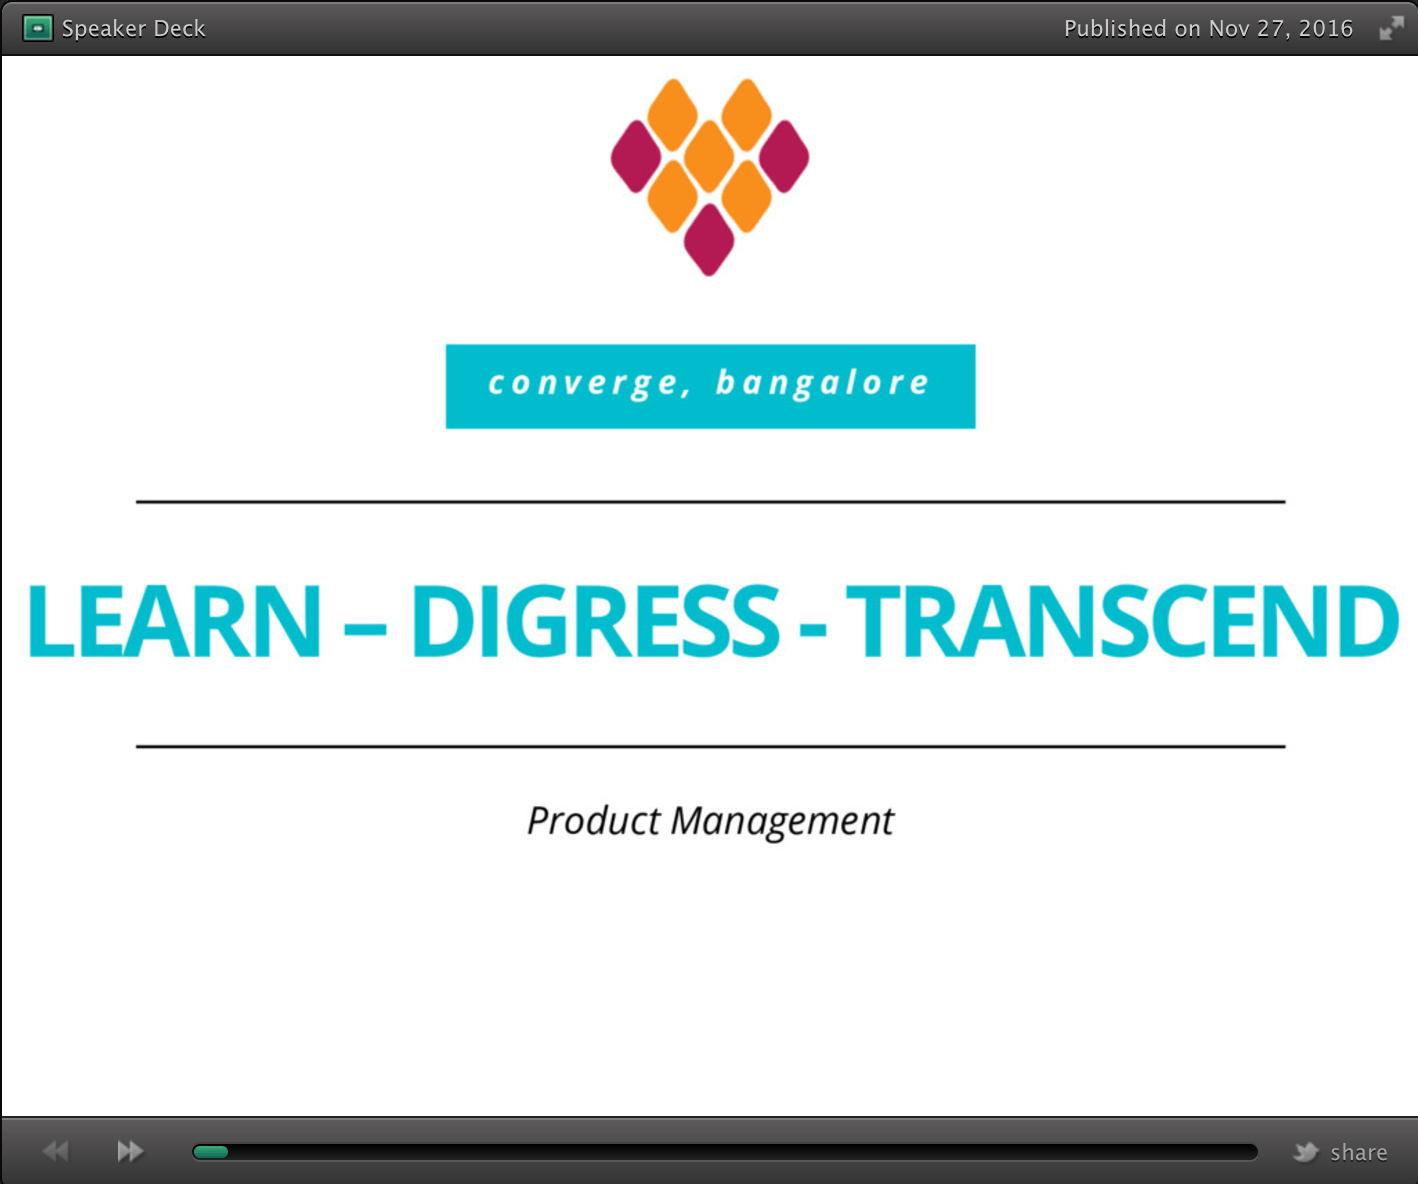 SpeakerDeck: Shuhari – Learn – Digress – Transcend